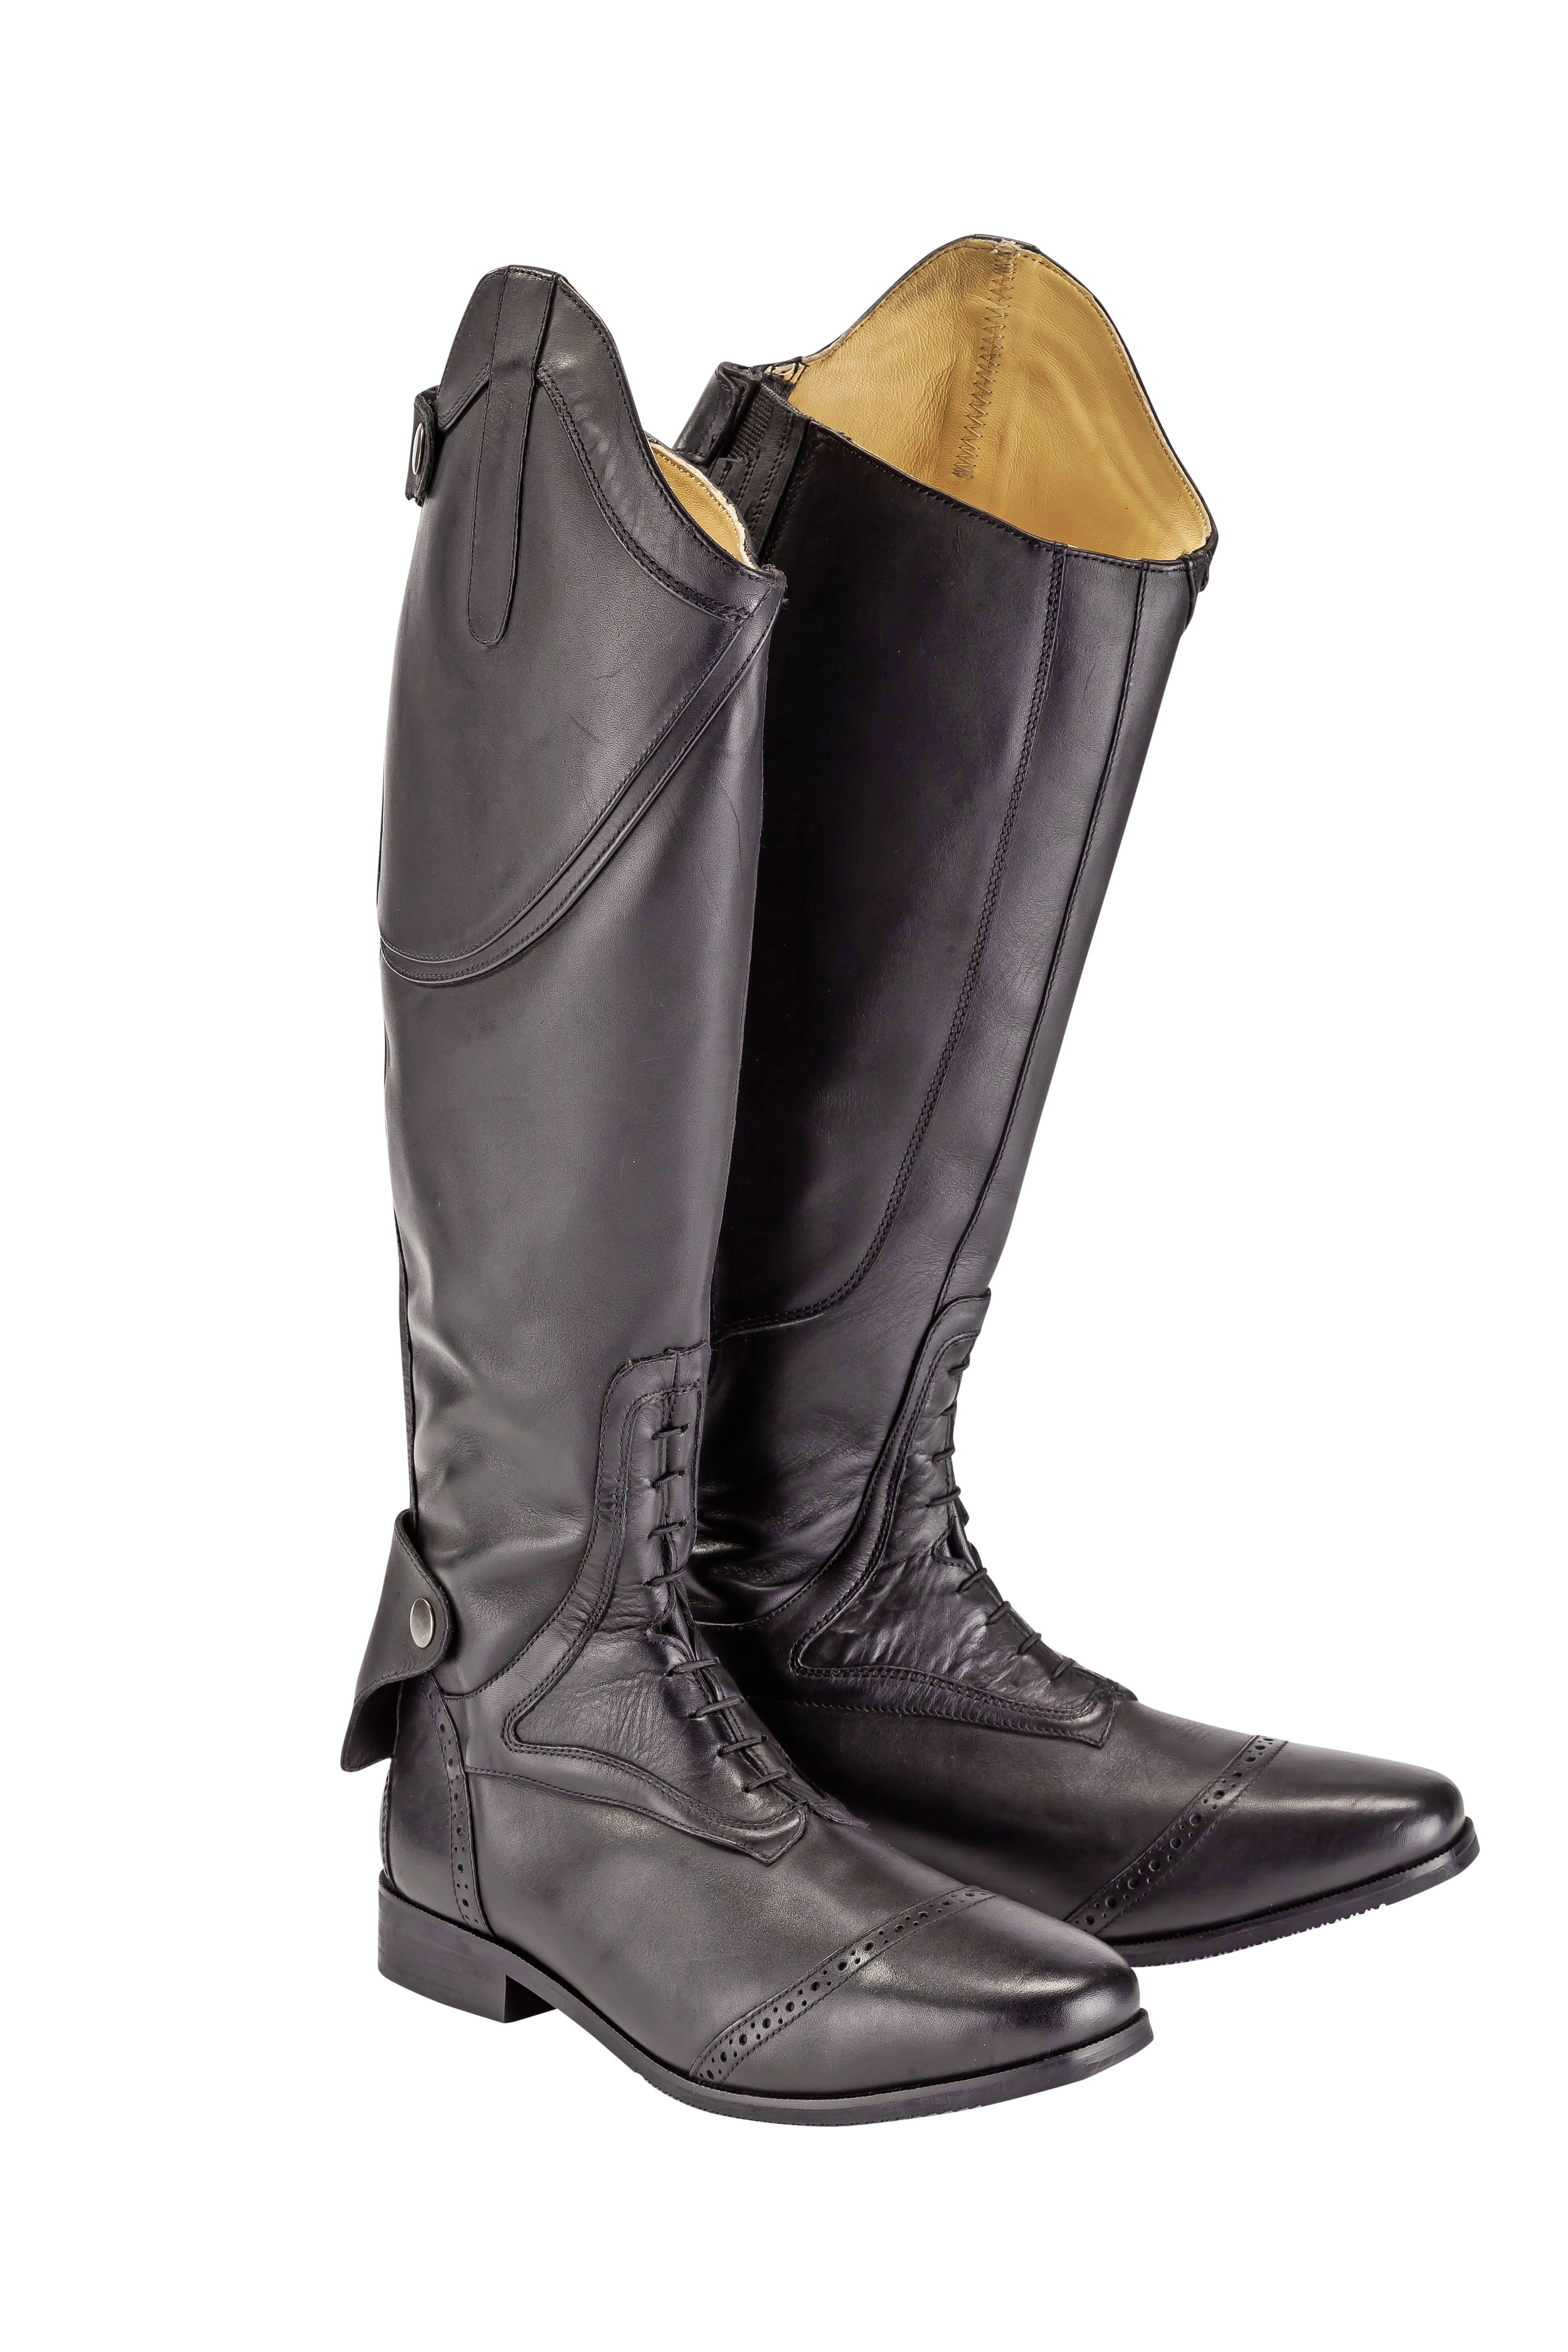 a2aba72f3788b2 50% off leather riding boots, exclusive to Your Horse readers Your ...